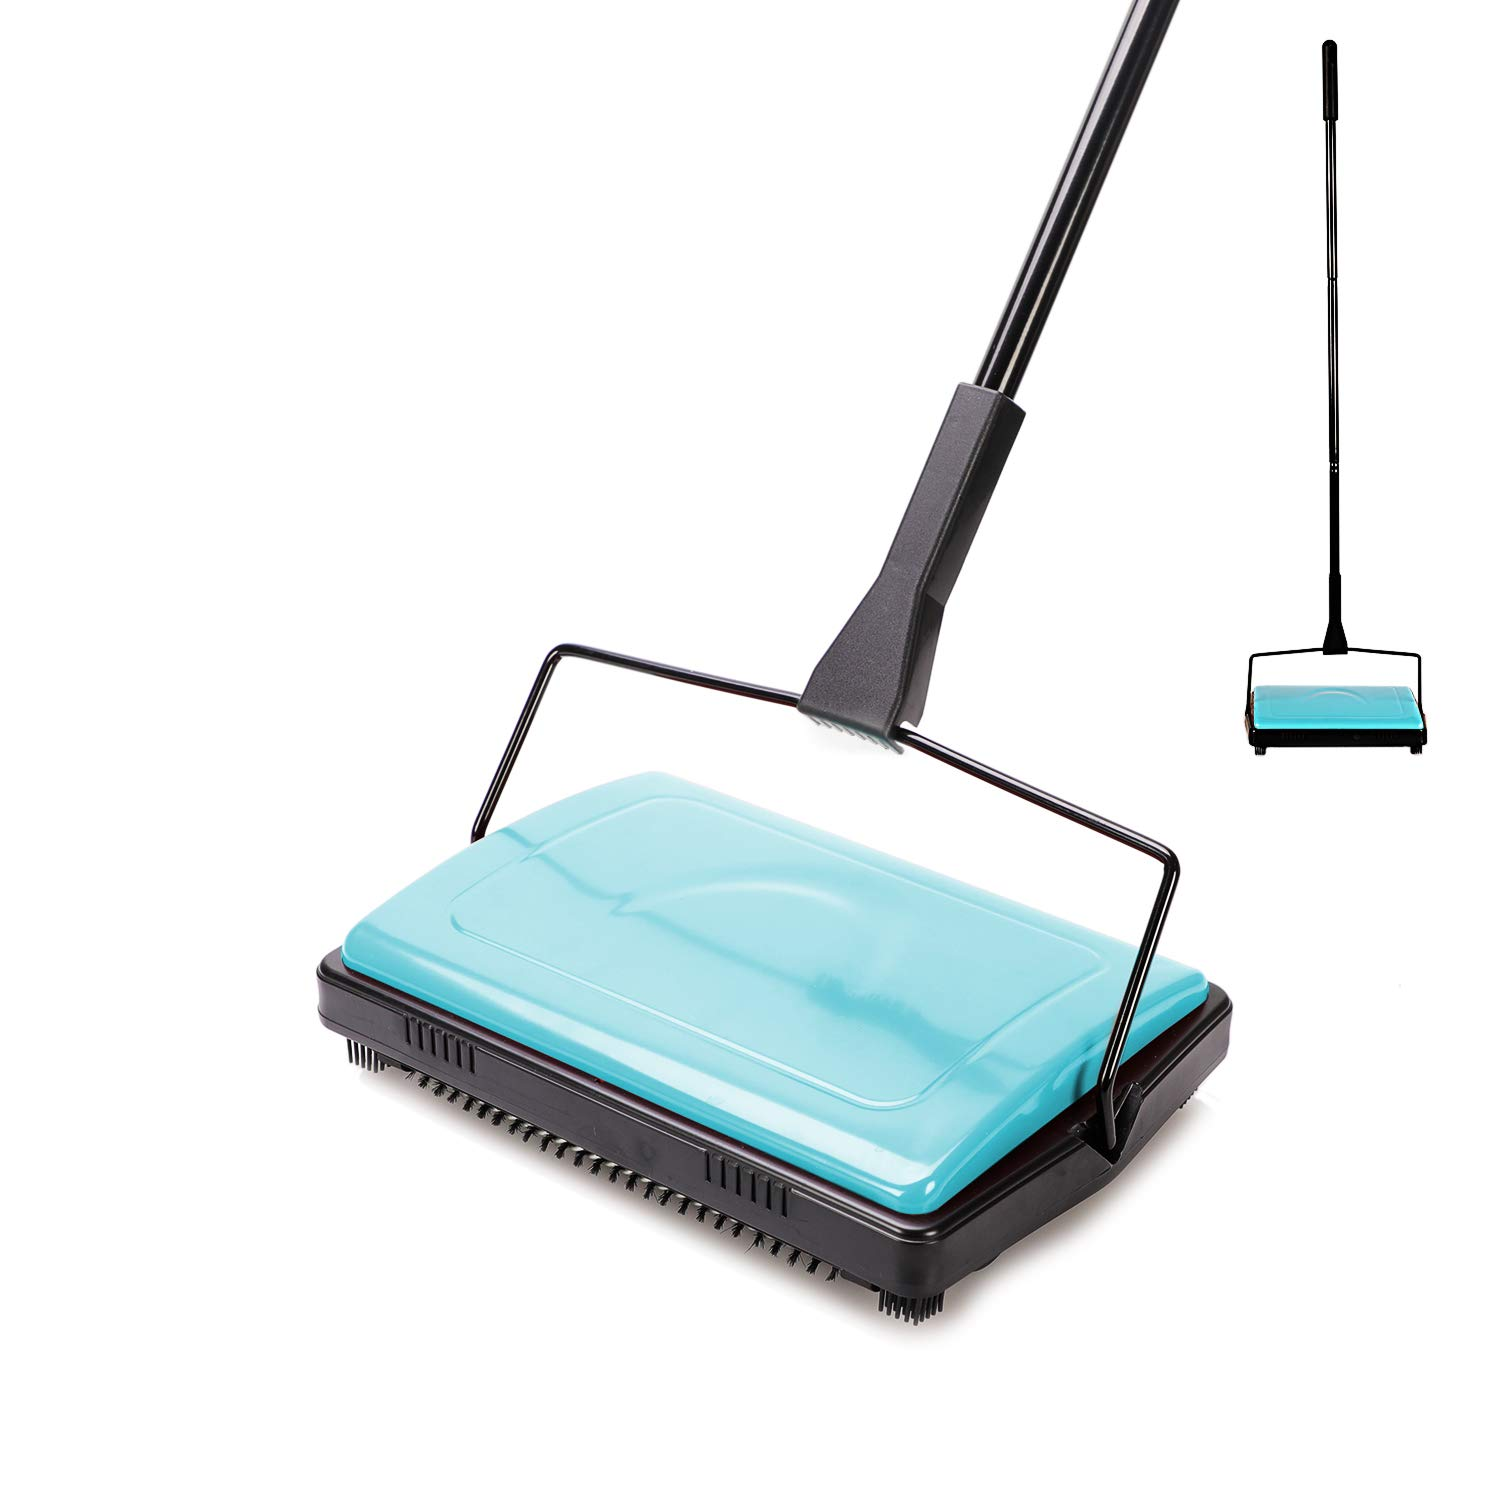 Yocada Carpet Sweeper Cleaner for Home Office Low Carpets Rugs Undercoat Carpets Pet Hair Dust Scraps Paper Small Rubbish Cleaning with a Brush Blue